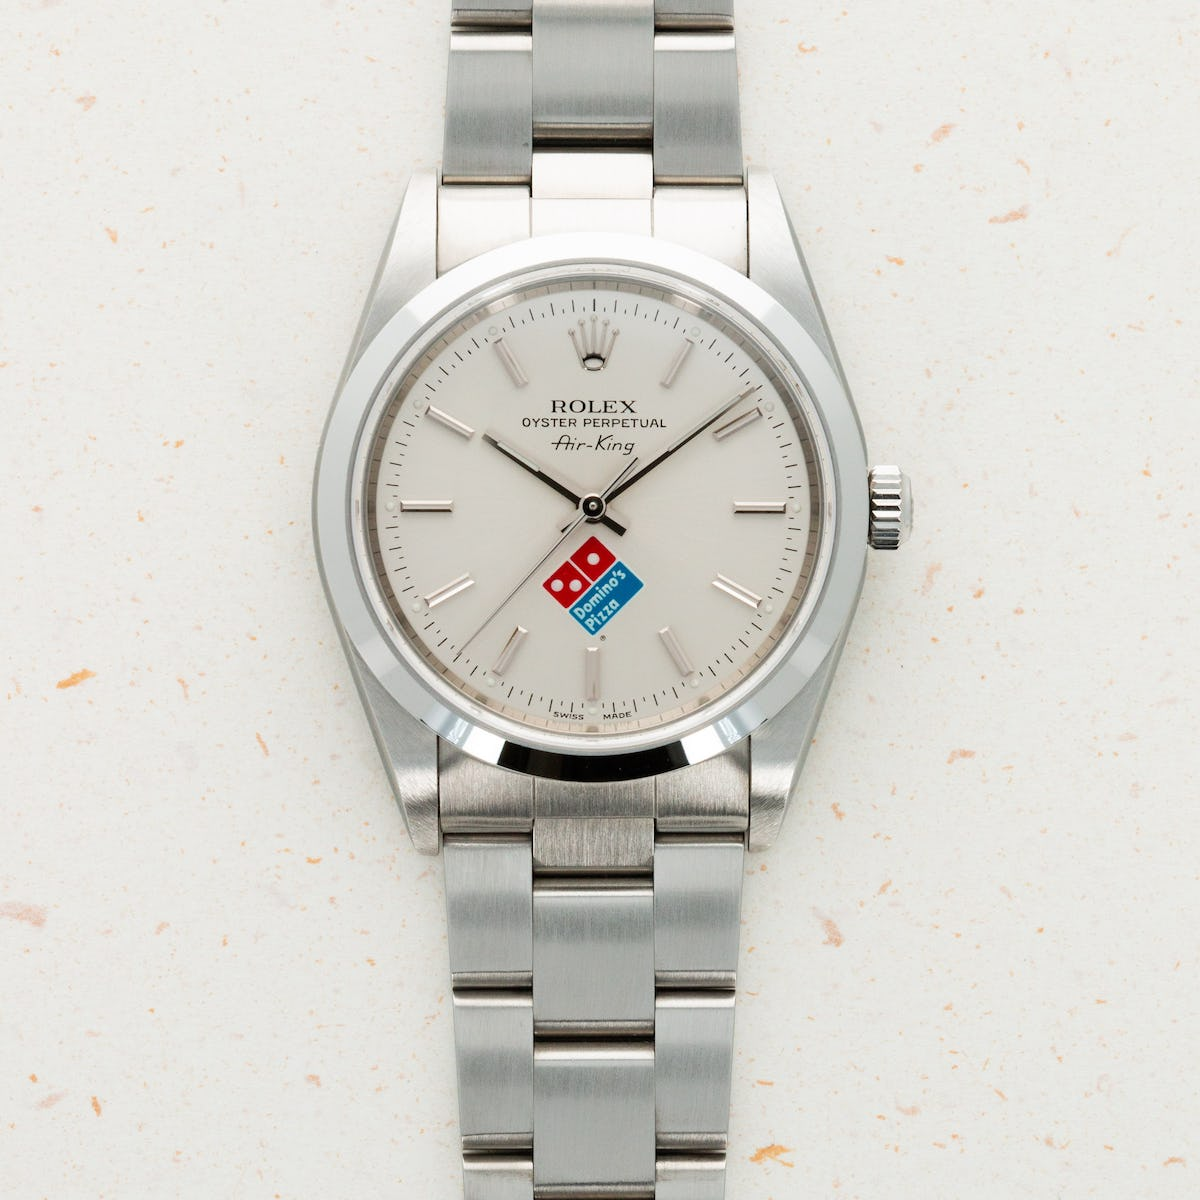 Thumbnail for Rolex Air-King Dominos Edition 14000